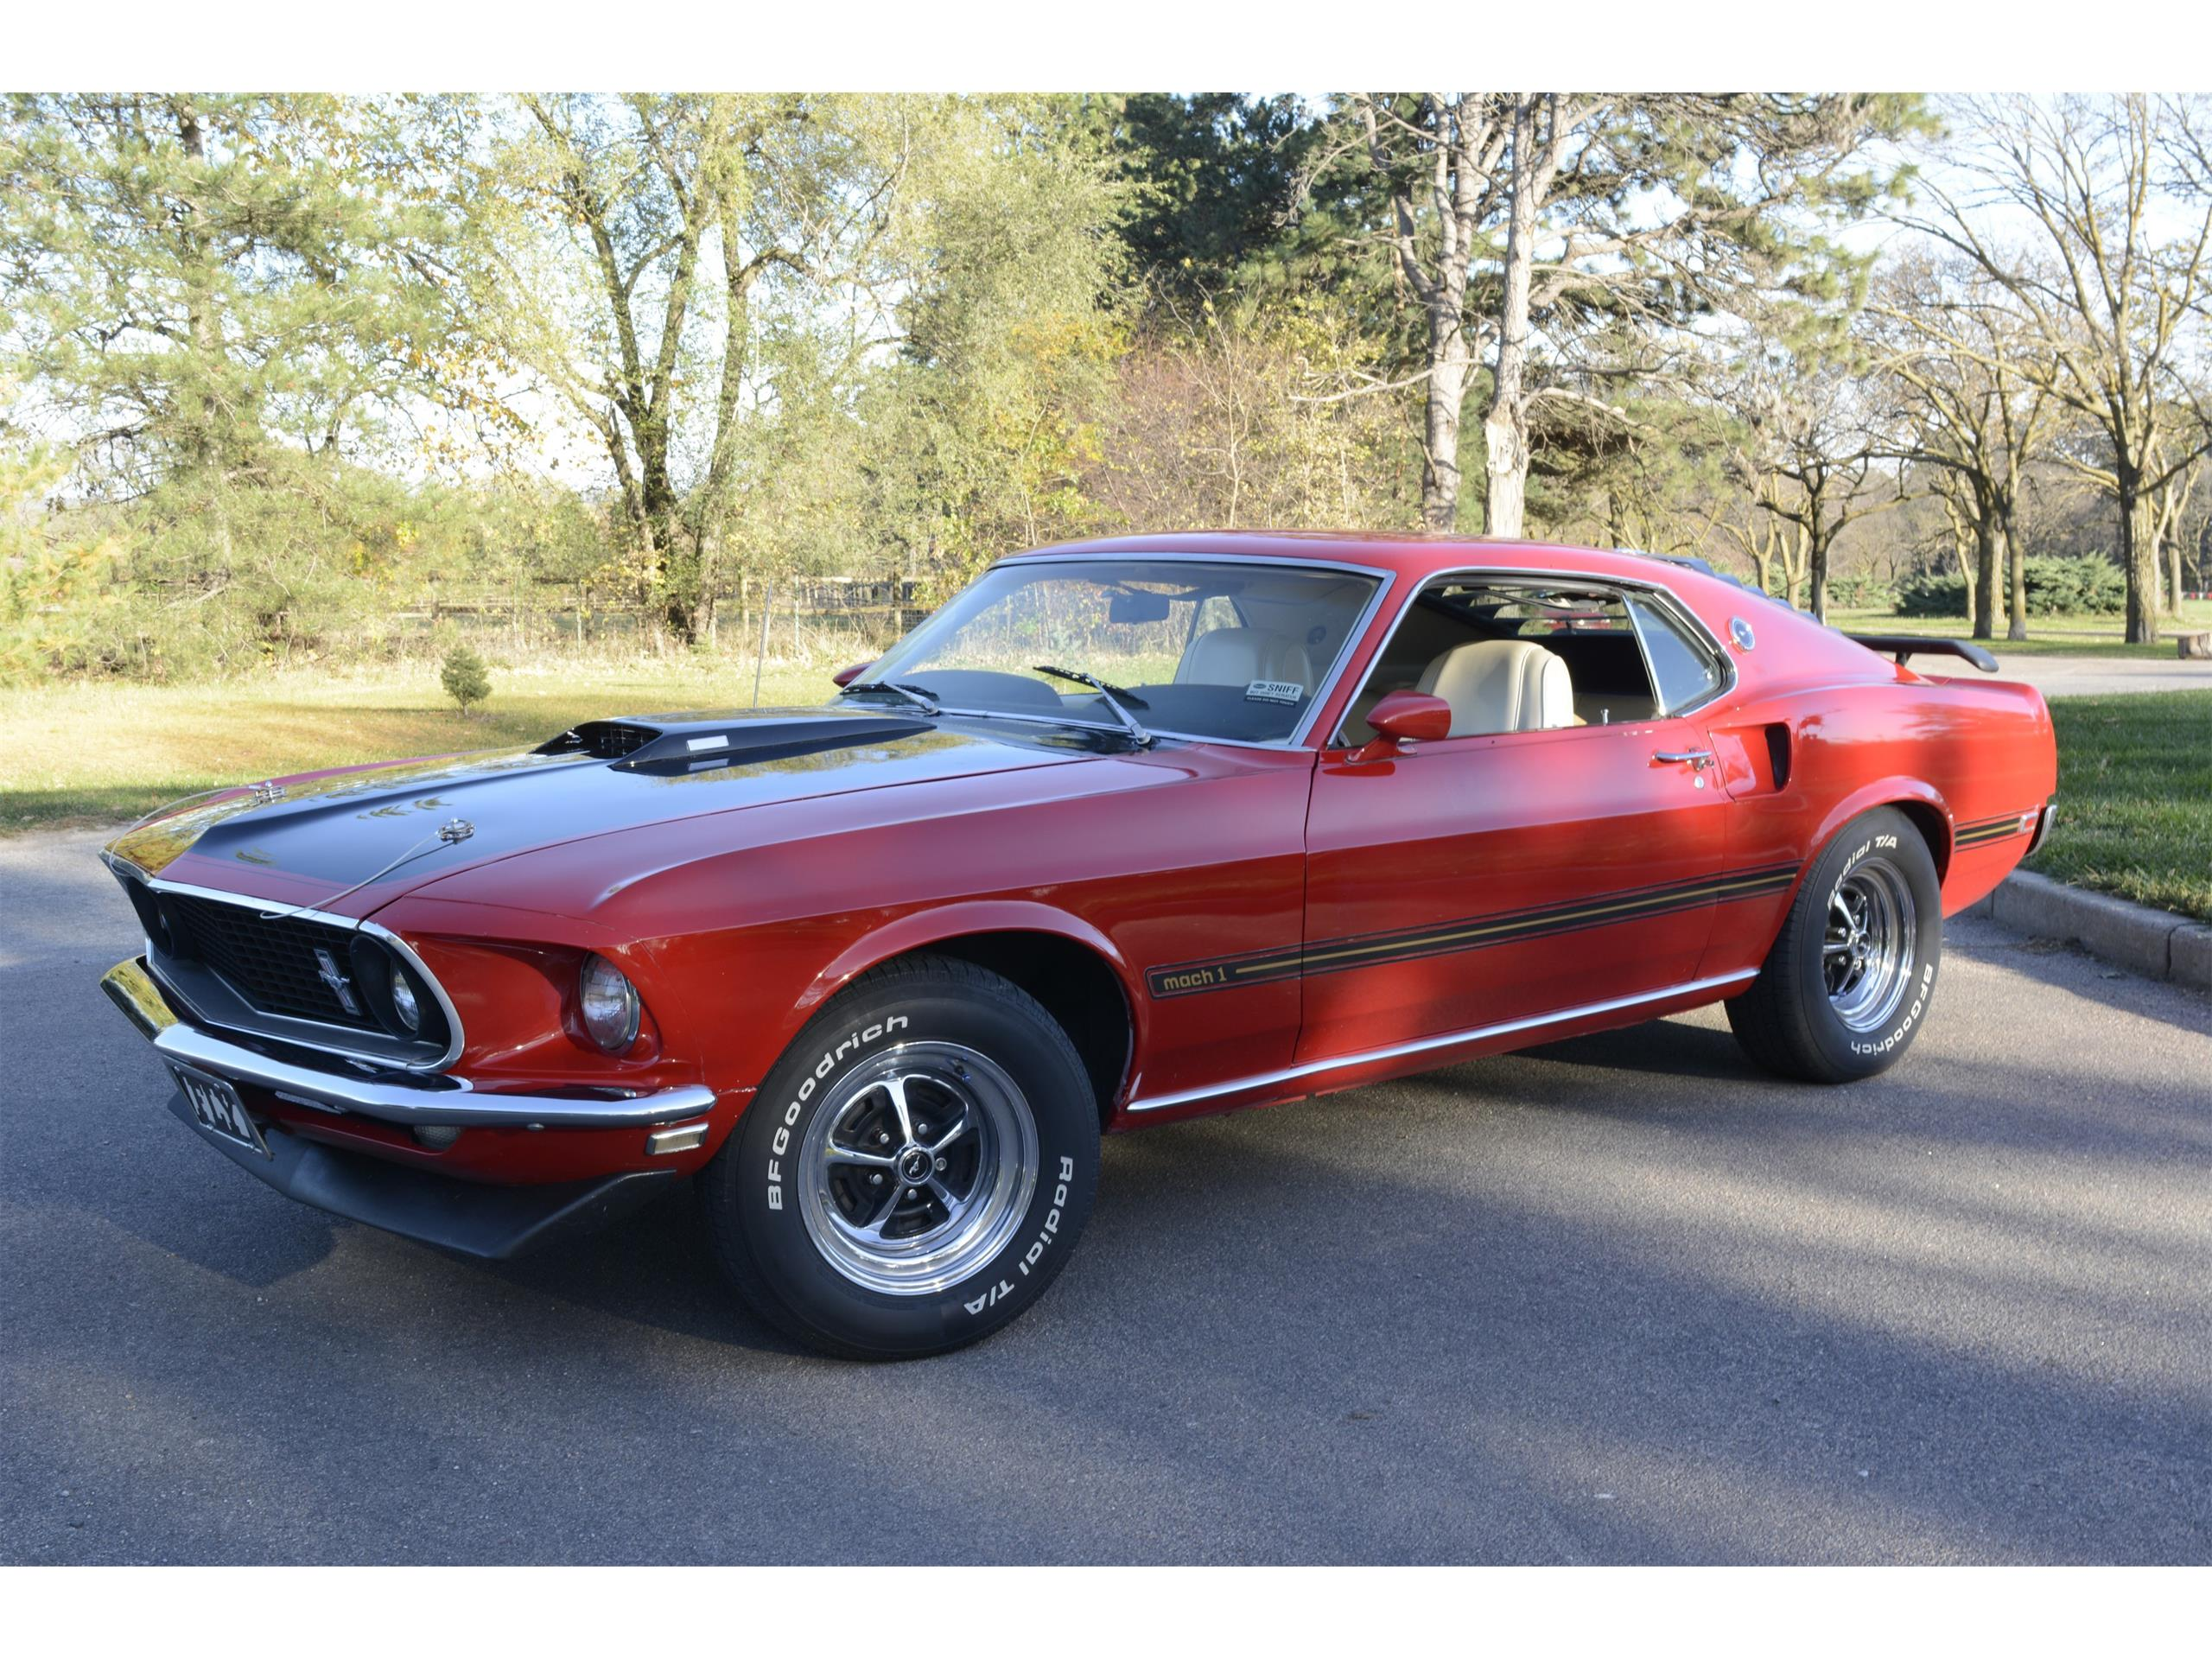 1969 Ford Mustang Mach 1 for Sale | ClassicCars.com | CC-1035809